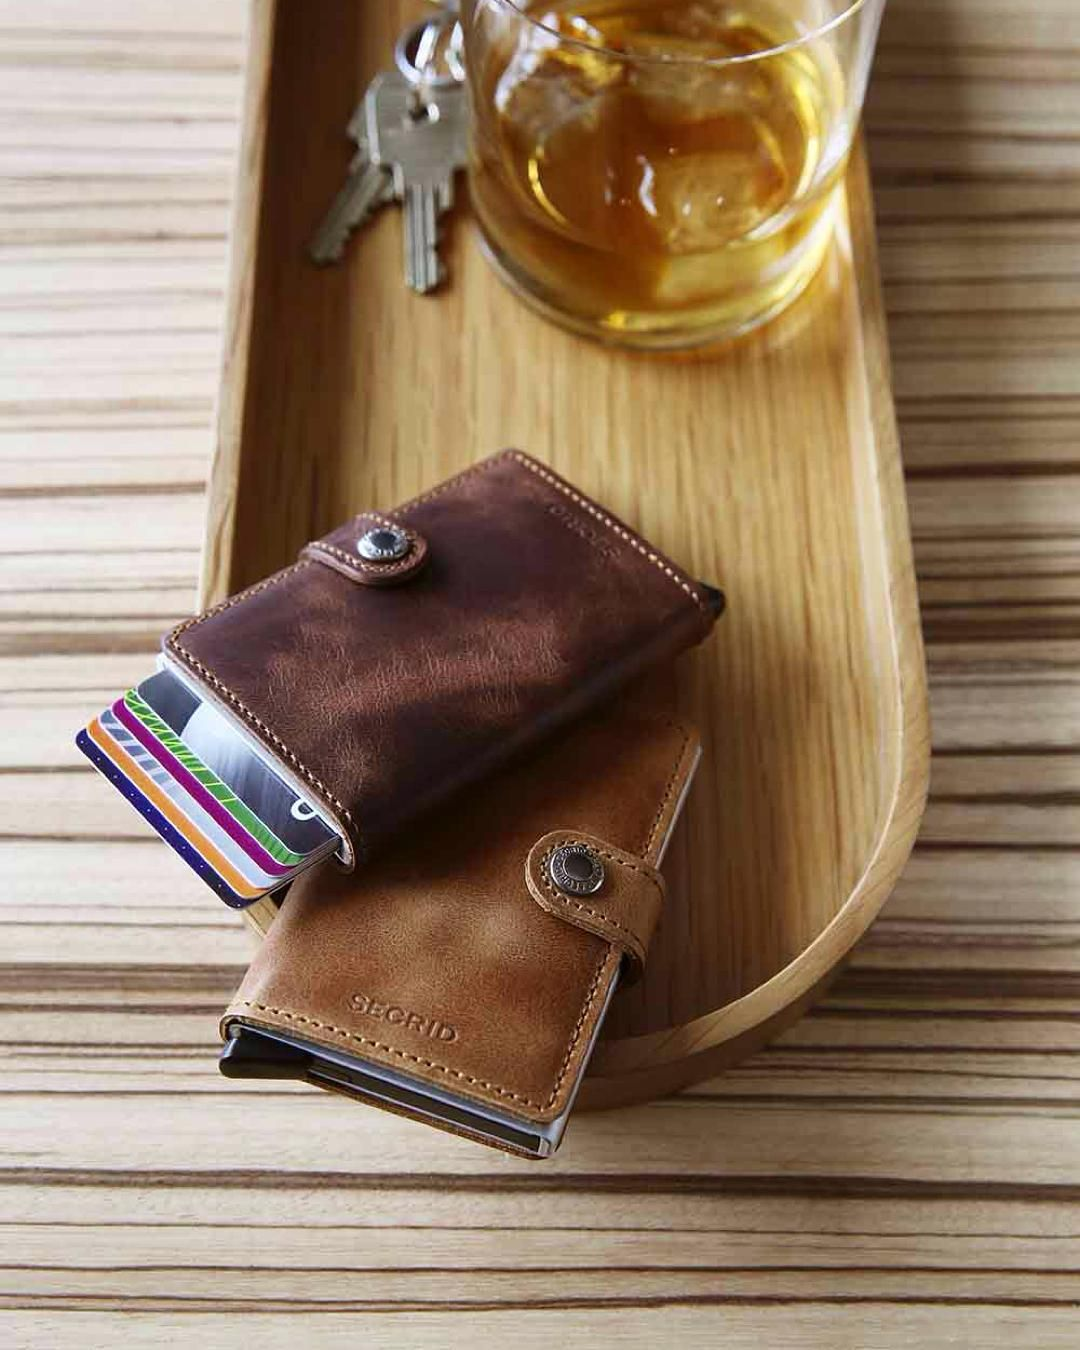 8b44b8bd03d Secrid Miniwallet Vintage Brown & Vintage Cognac • #Secrid | LEATHER ...